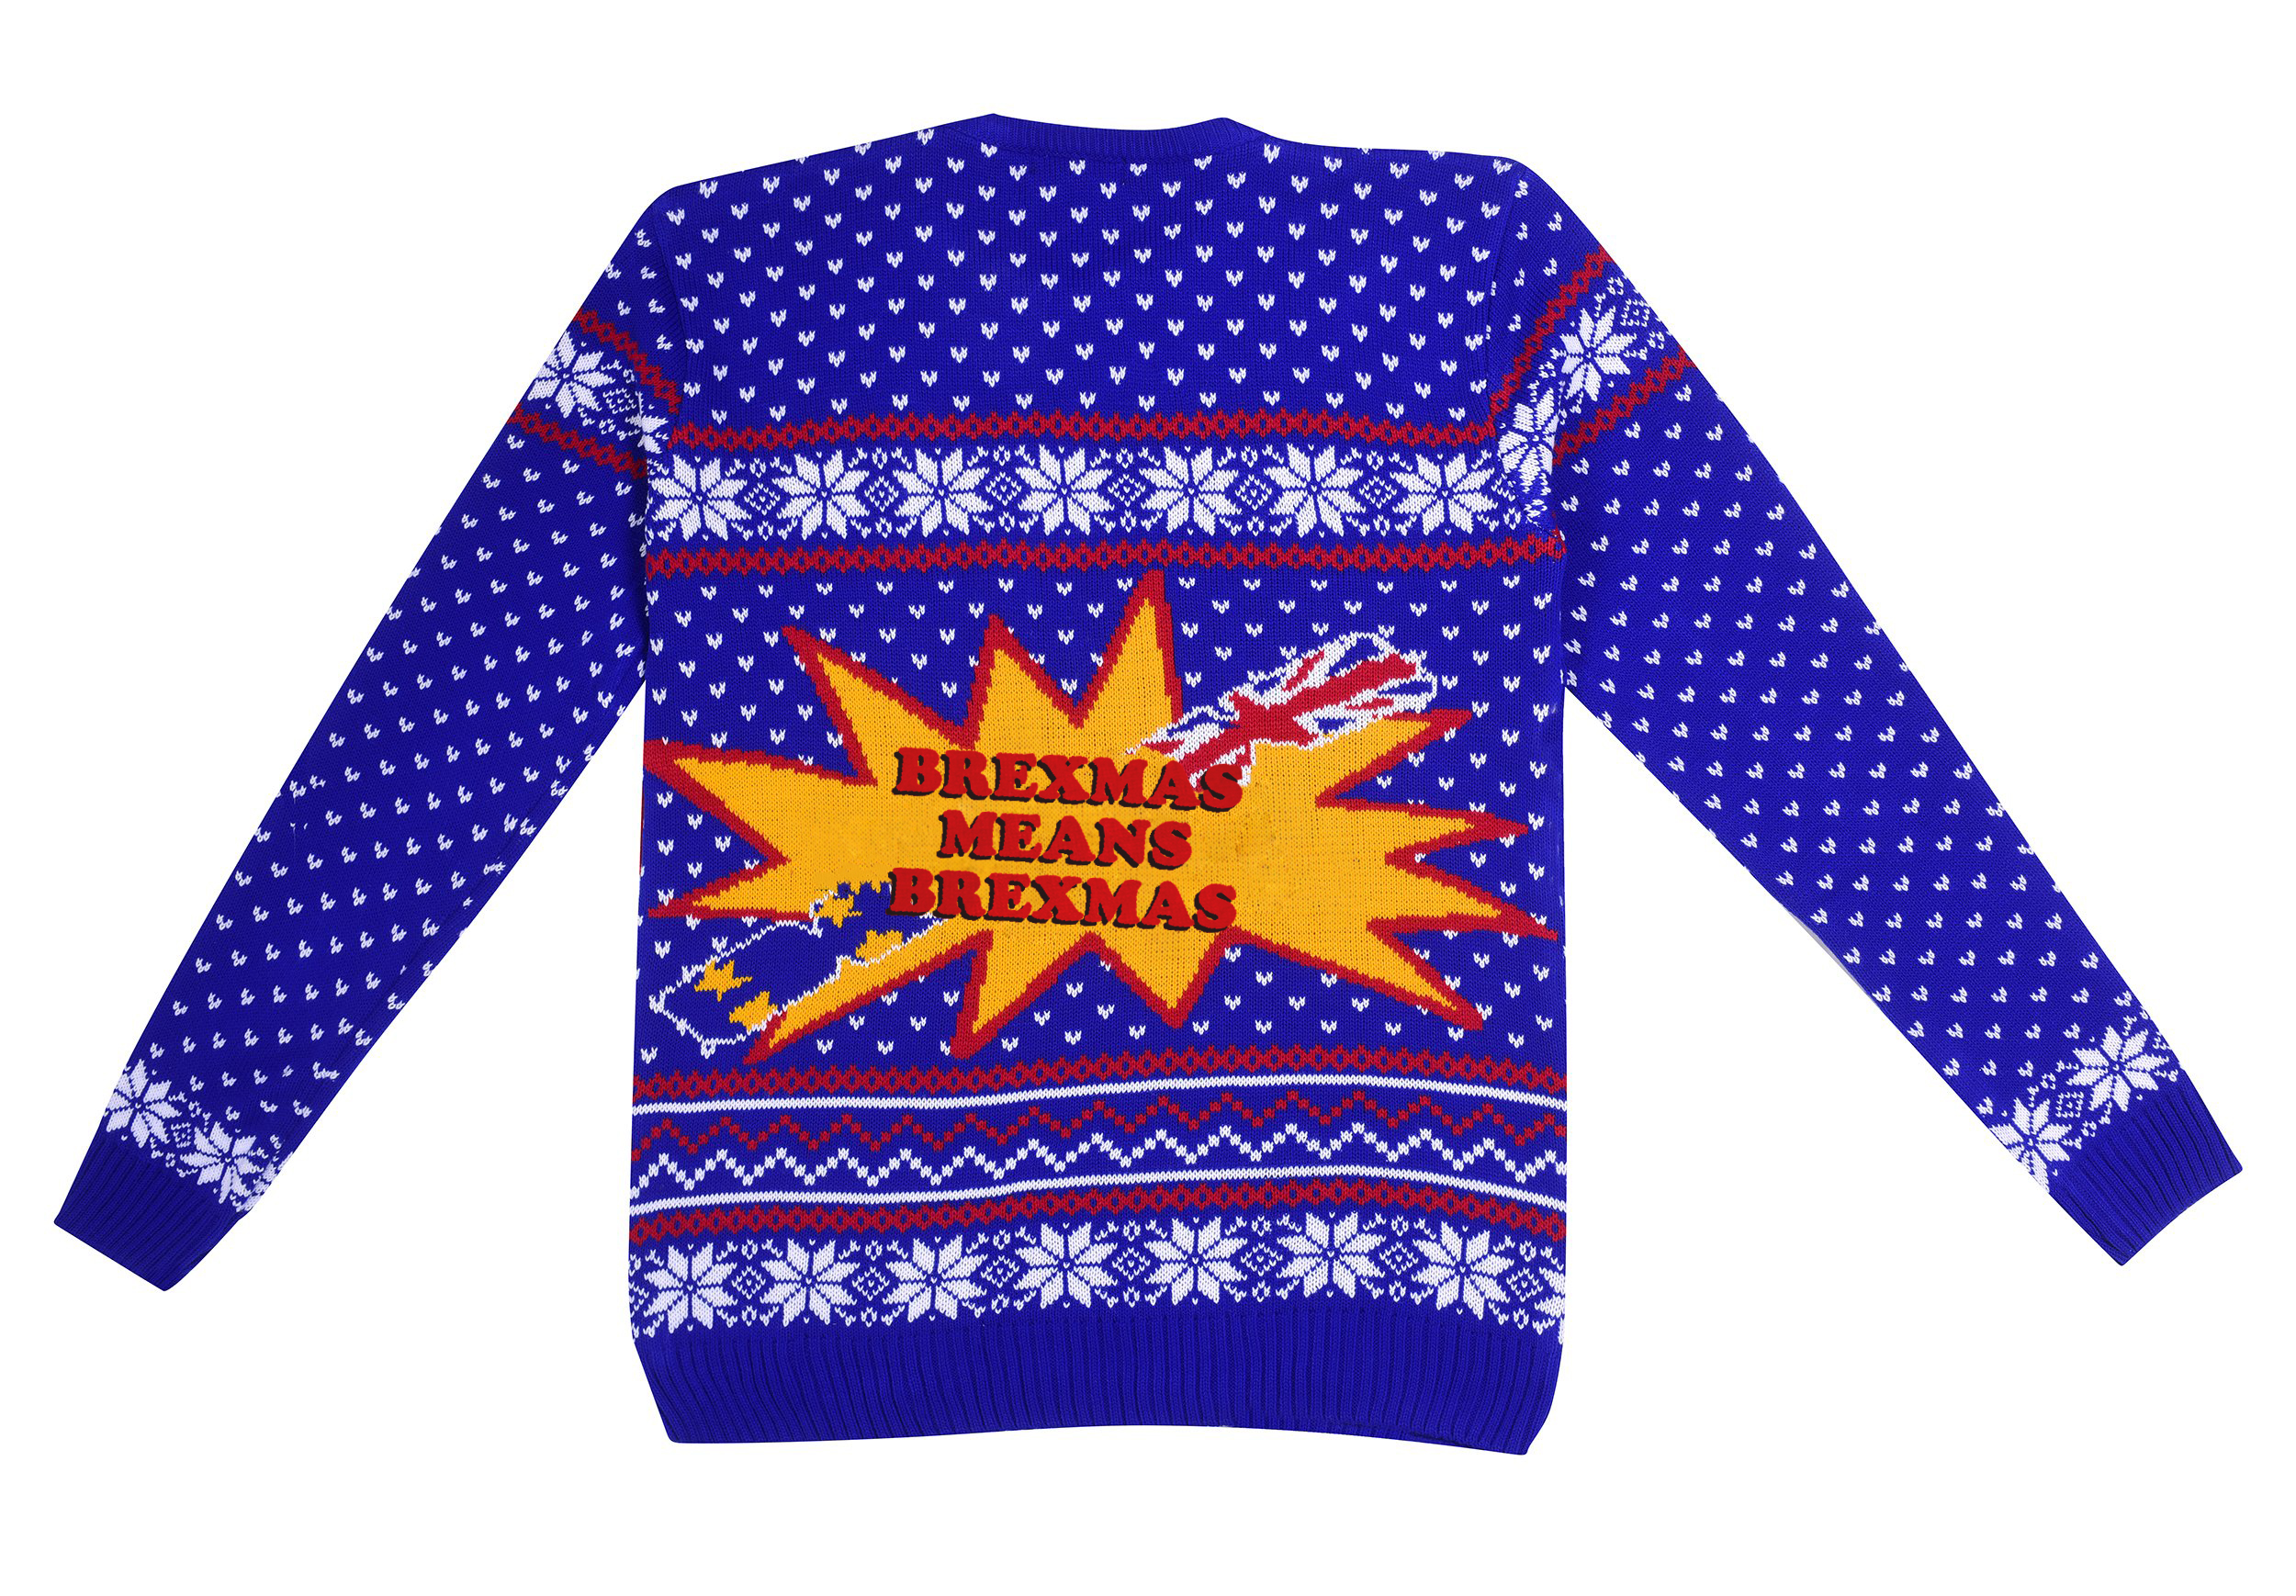 Brexit Leave campaign Christmas jumper